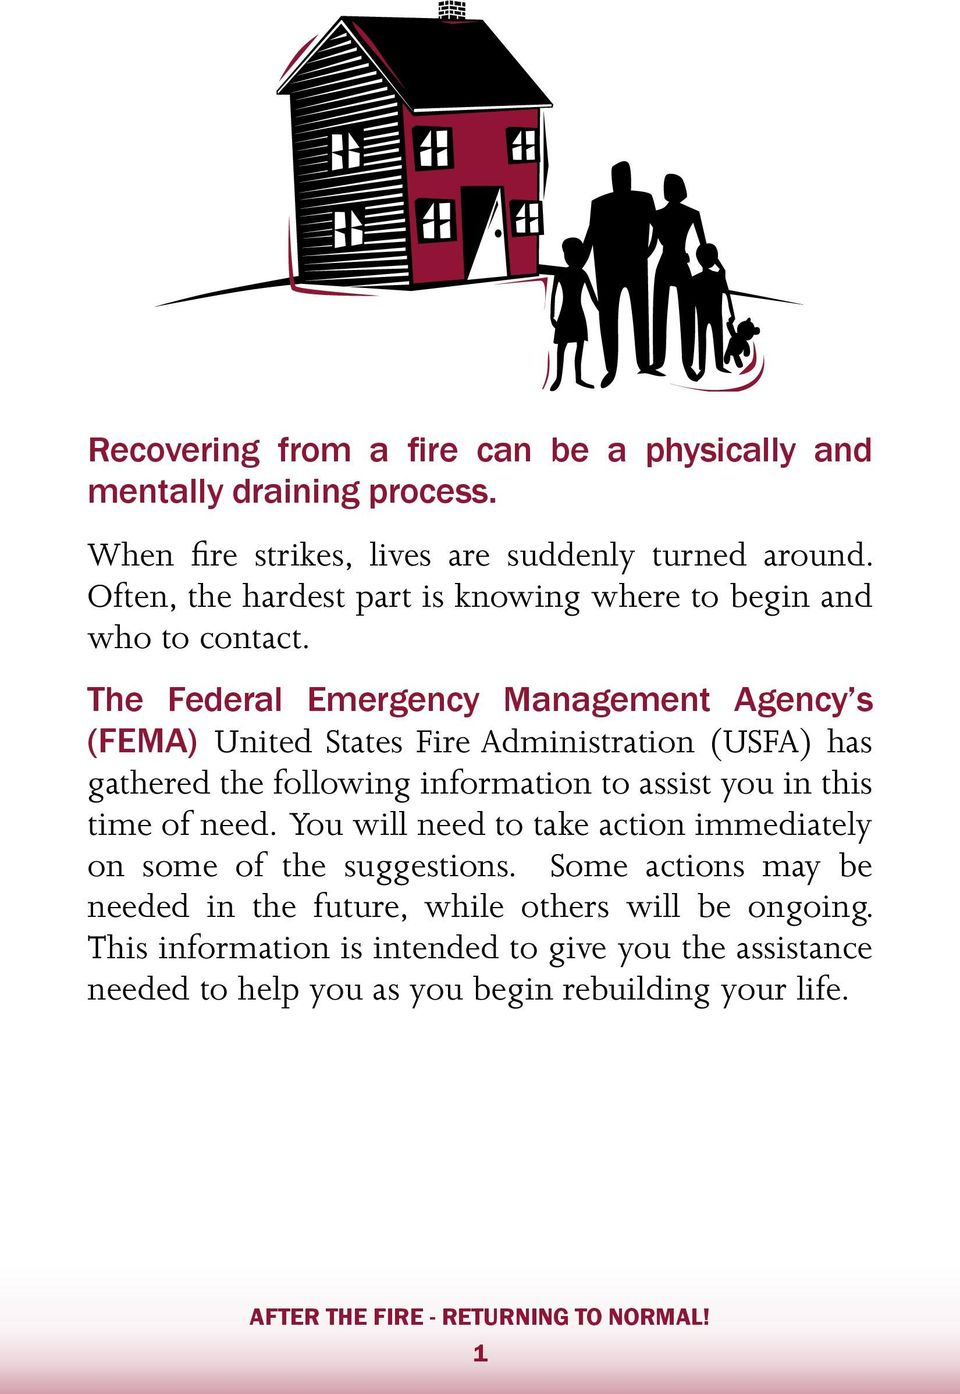 The Federal Emergency Management Agency s (FEMA) United States Fire Administration (USFA) has gathered the following information to assist you in this